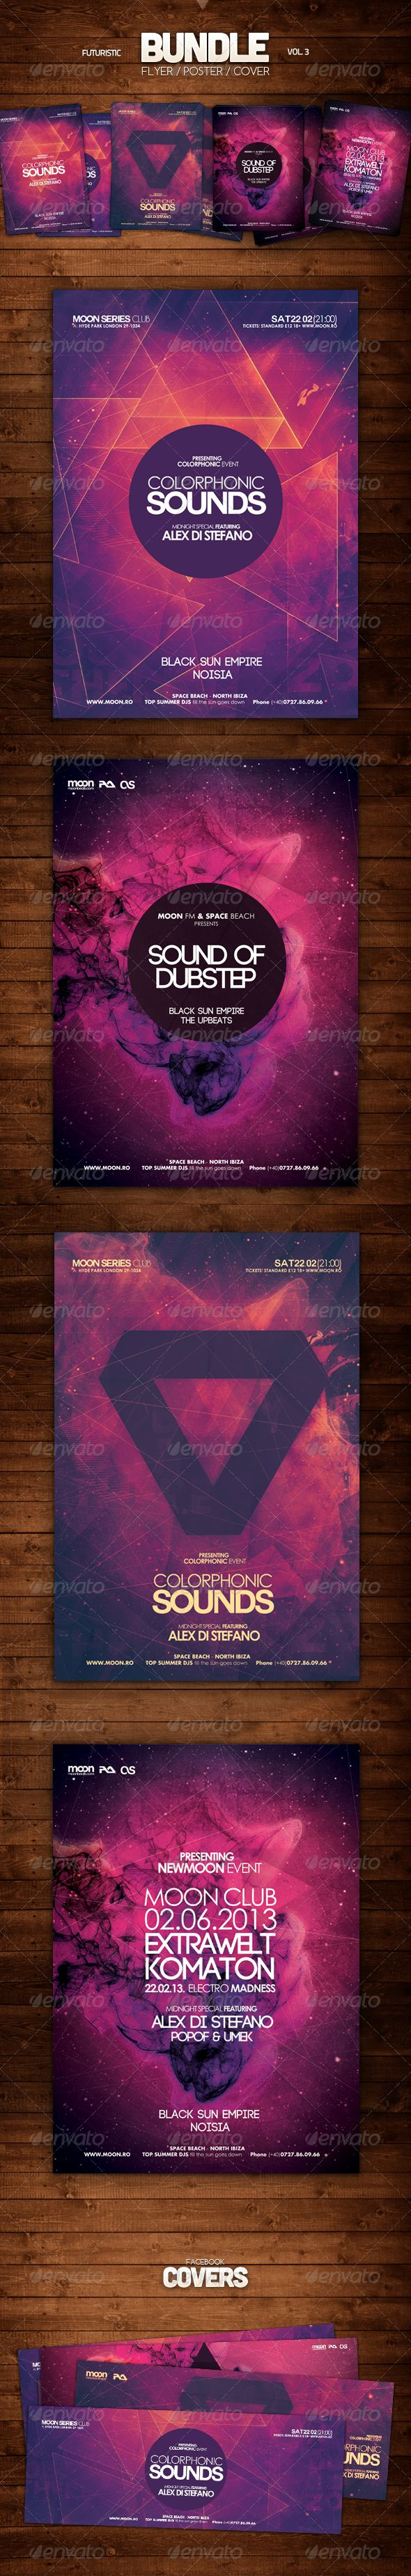 Futuristic Bundle Vol 3  #GraphicRiver         Futuristic Bundle Vol 3 – This bundle of flyers / posters can be used to promote an electronic music event or any techno event. The perfect futuristic flyers and templates for your party. These flyer templates have a light and colorful style almost psyhedelic, were you can center a title or just focus on the event's details. You can save 30% with this Futuristic Bundle of flyers and posters and you get their facebook covers.  This Bundle Contains: g